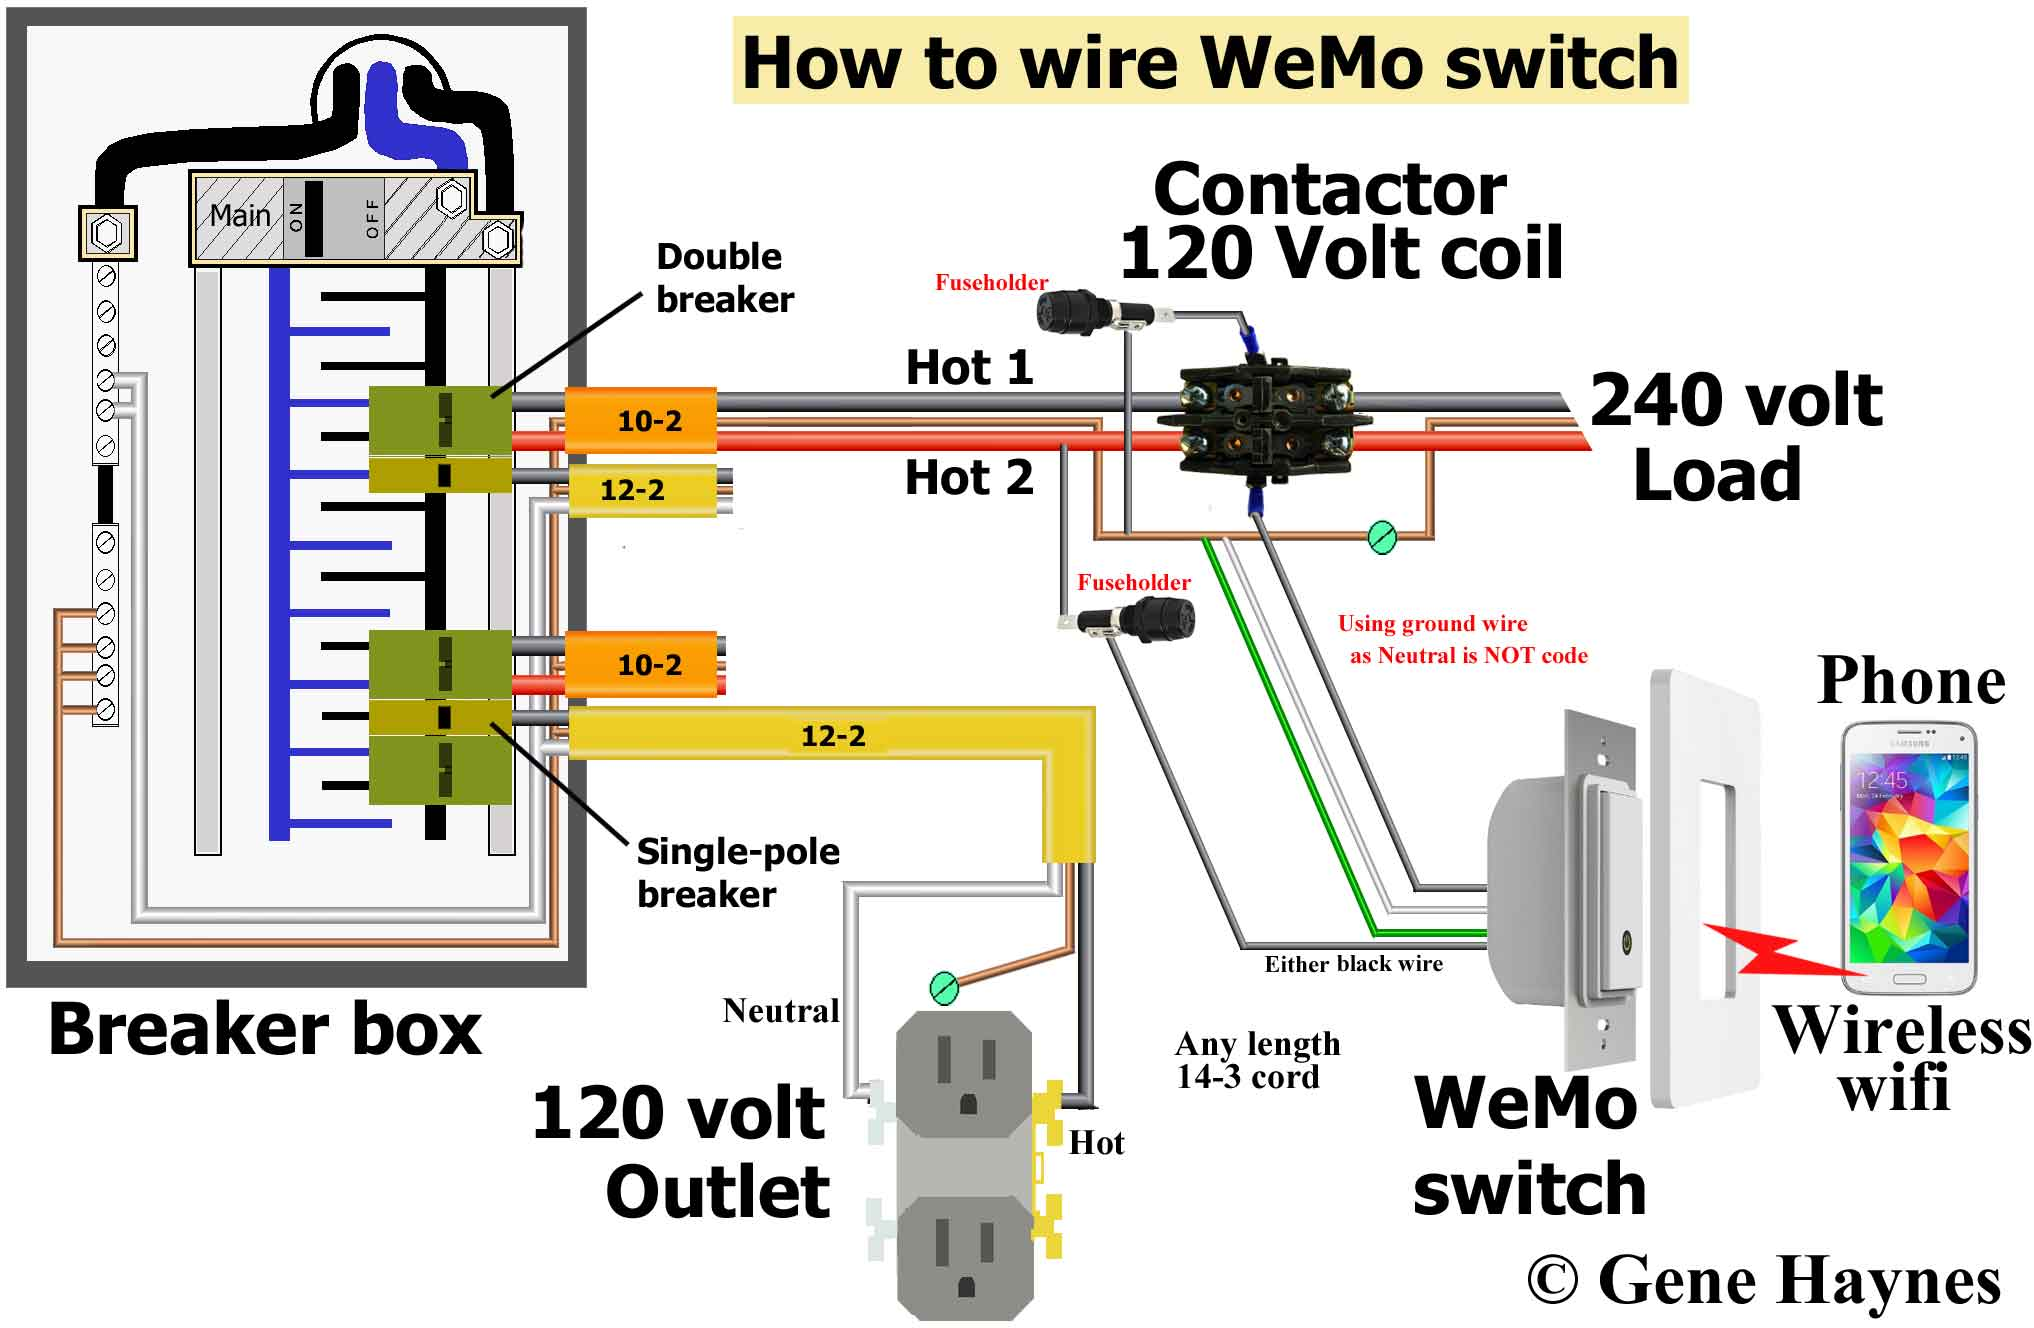 WeMo switch wiring illustration 33 not code wemo switch wiring diagram solenoid switch wiring diagram \u2022 wiring hunter model 27183 wiring diagram at gsmx.co